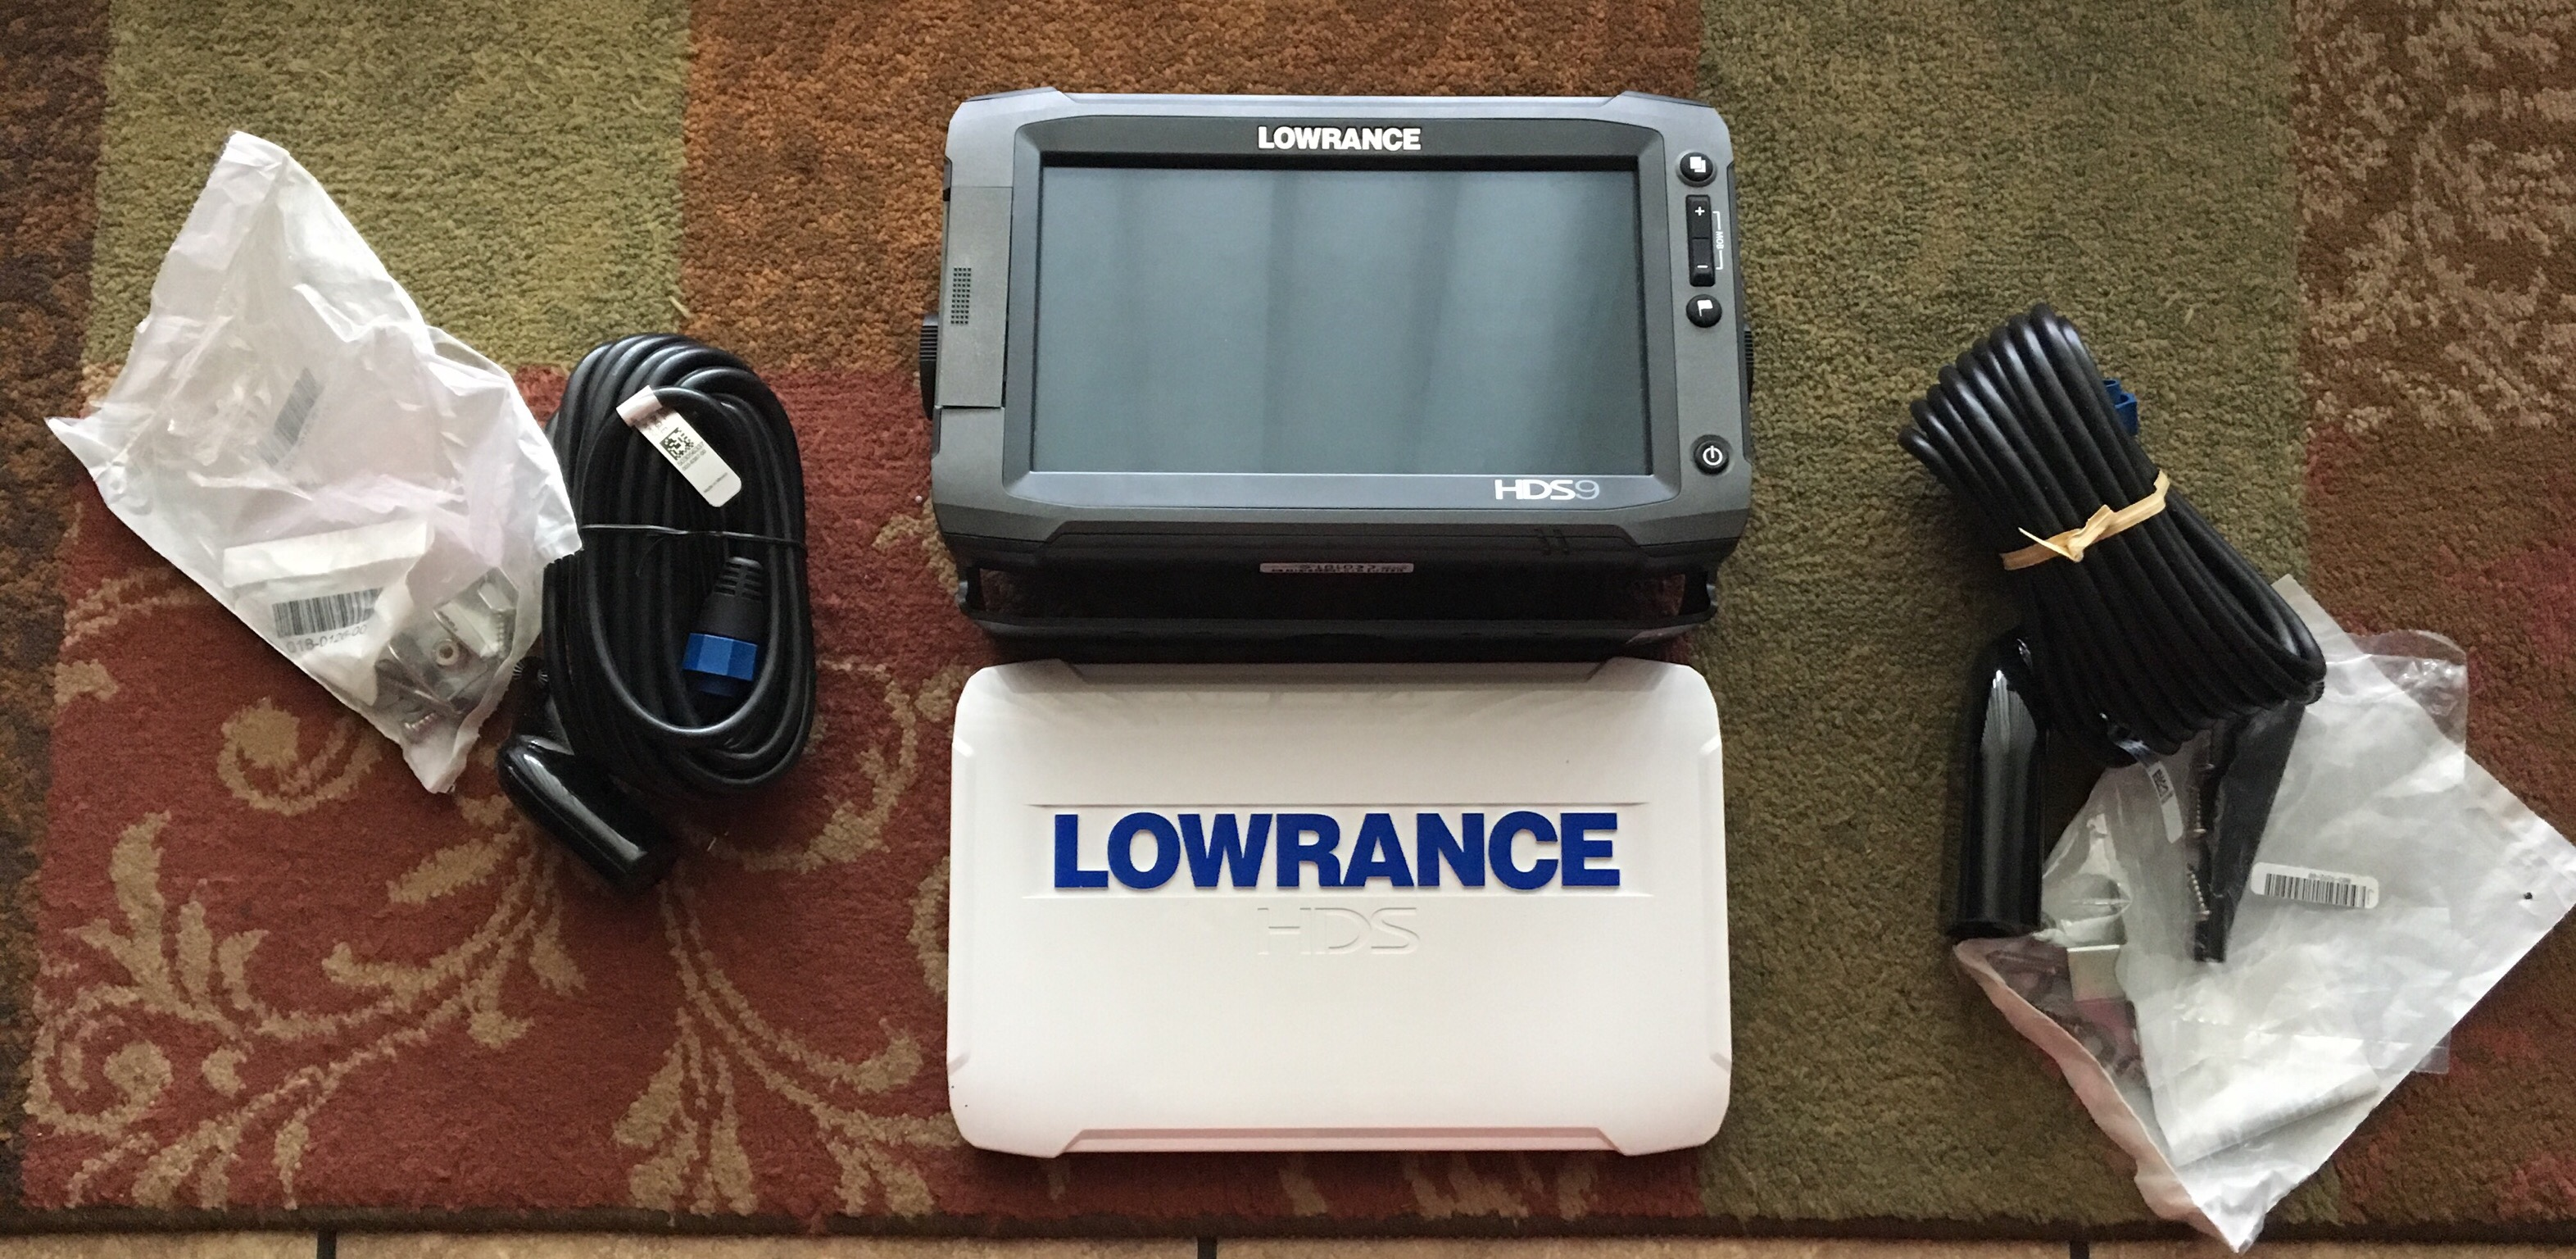 Lowrance HDS 9 Gen 2 for sale - Classifieds - Buy, Sell